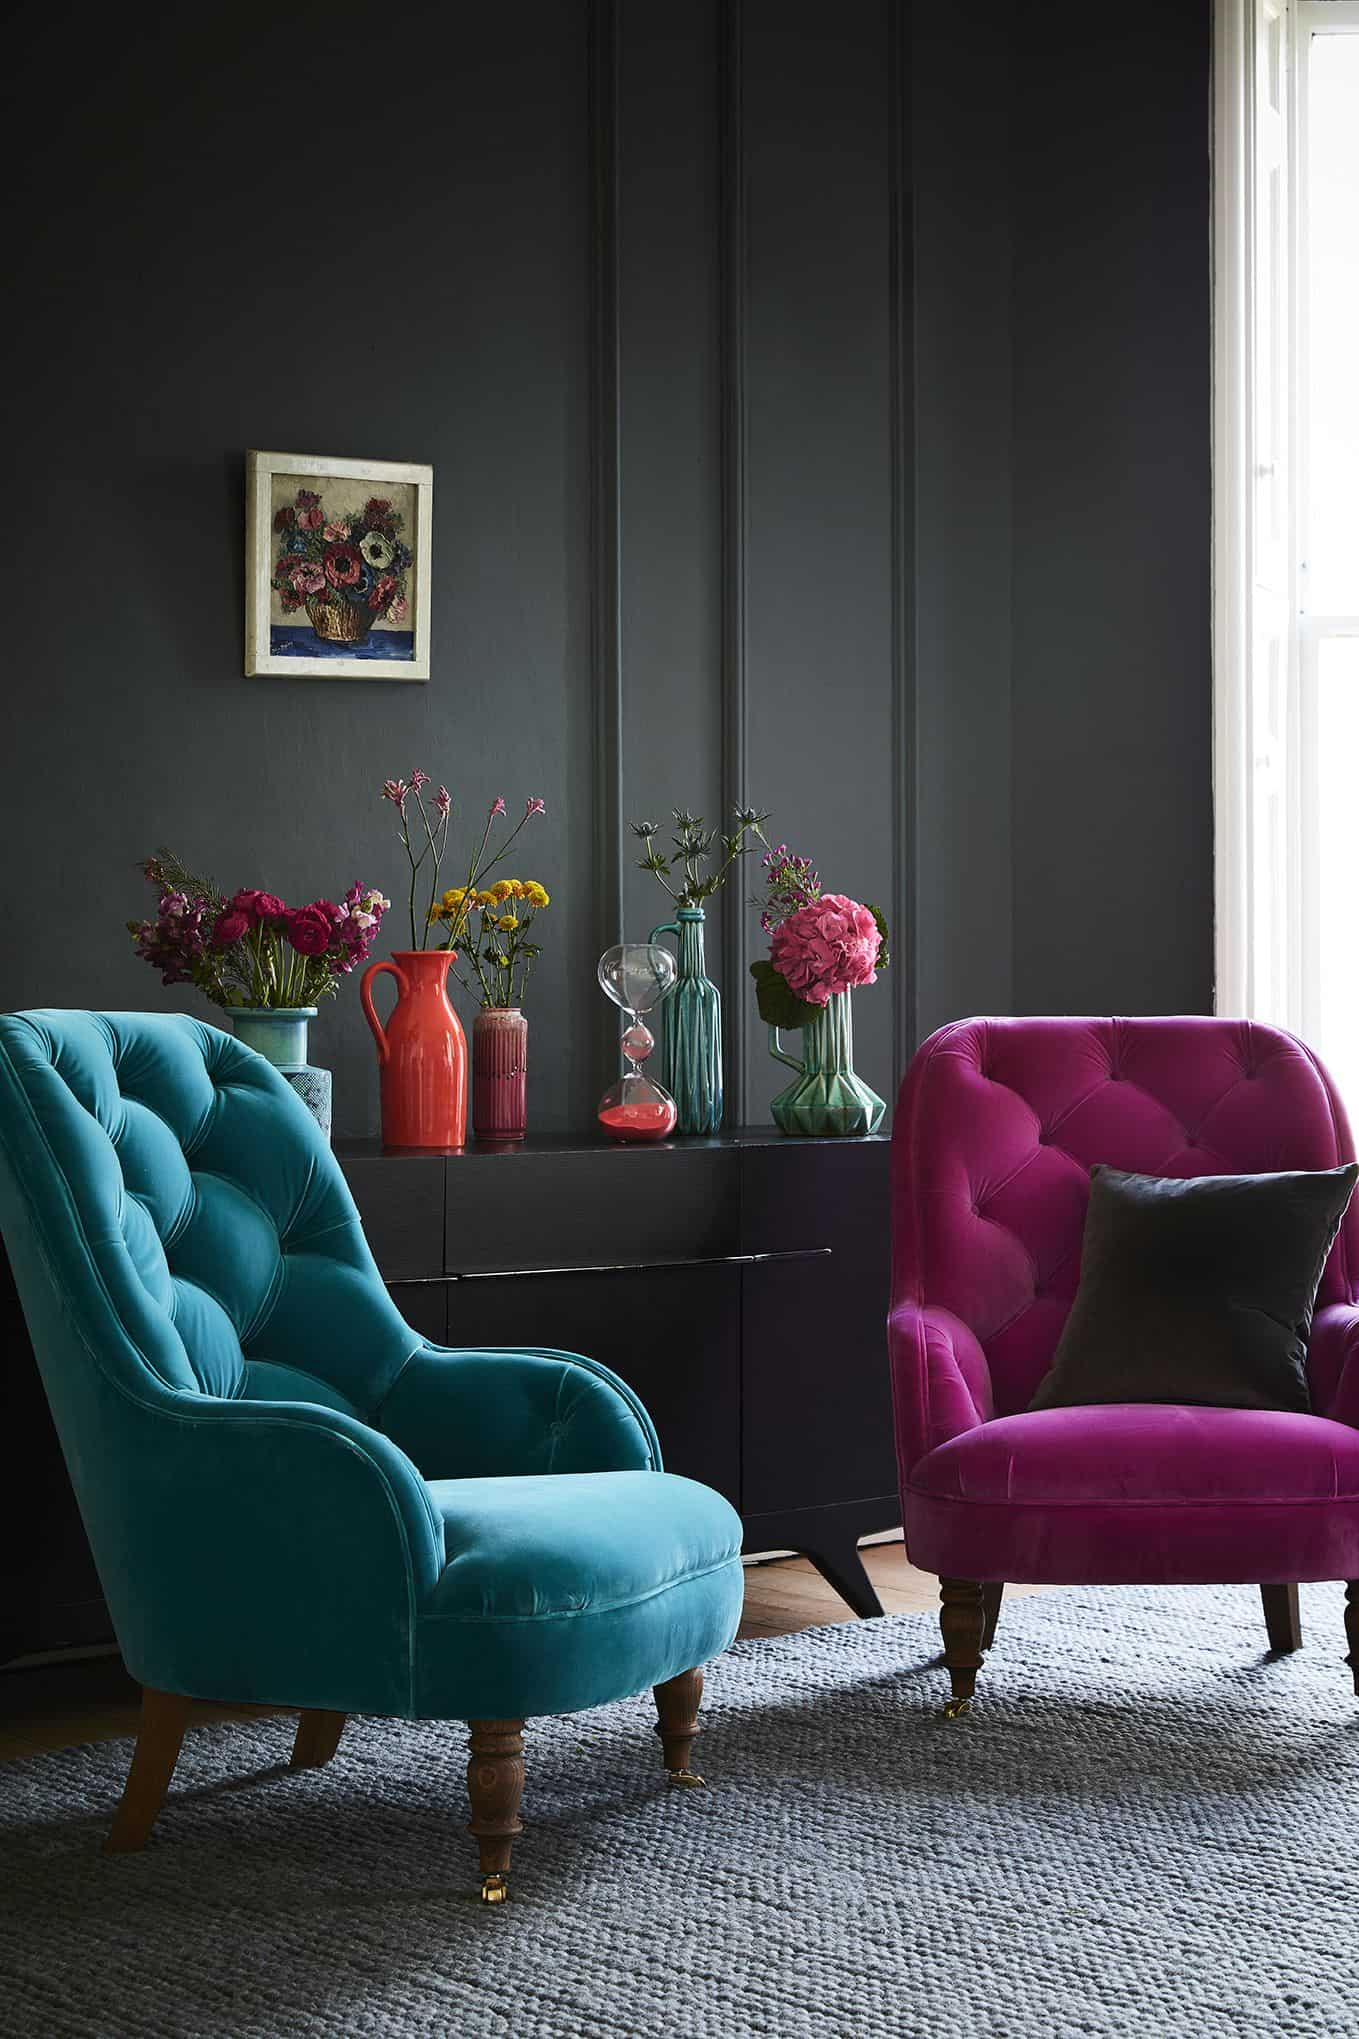 lving room with jewel tones